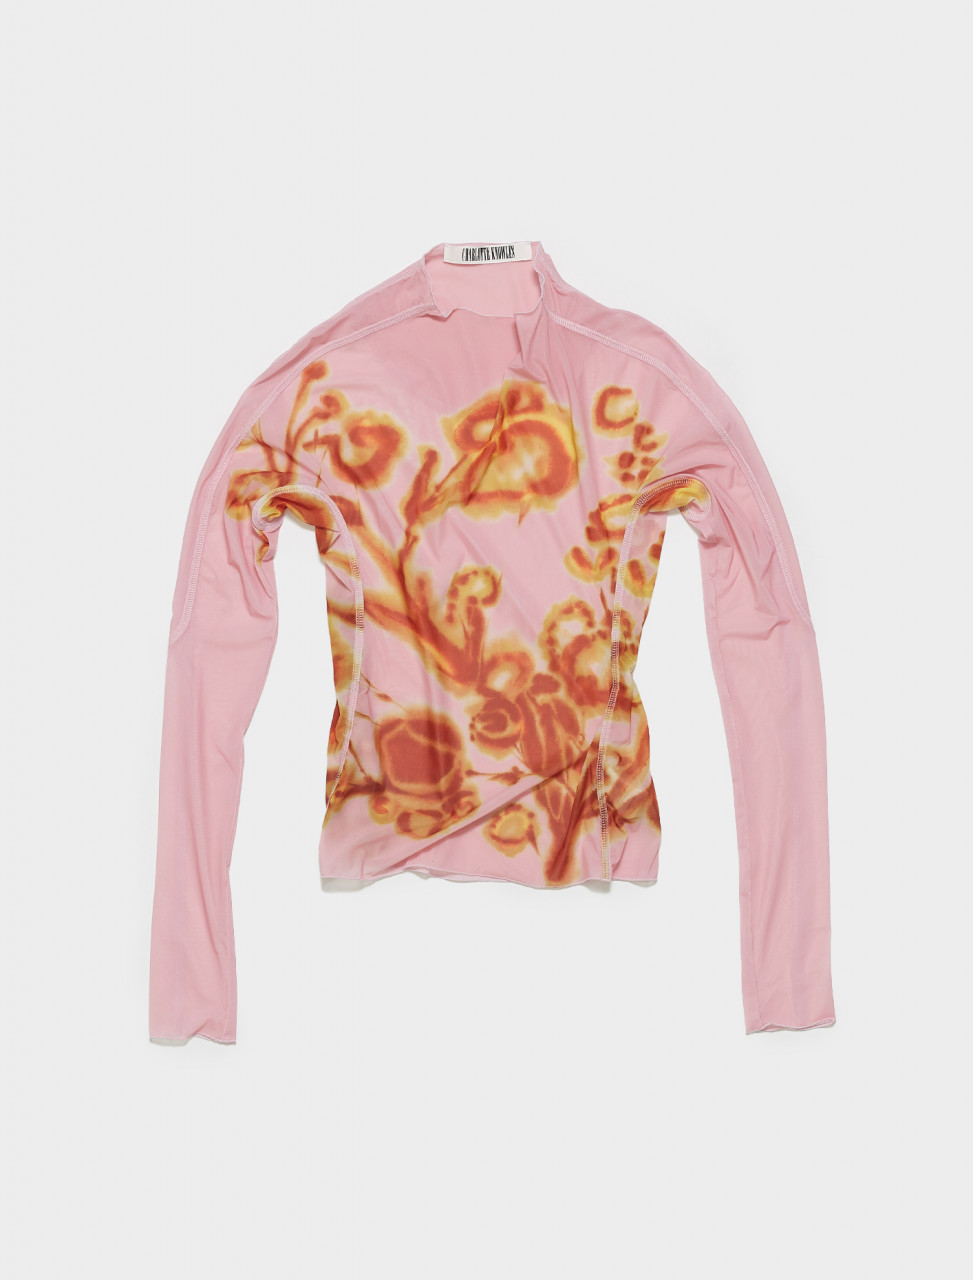 SS21-HT0AMFL-AMFL CHARLOTTE KNOWLES THIN MESH TOP W ANATOMIC CUTTING LINES IN AMBER FLORAL